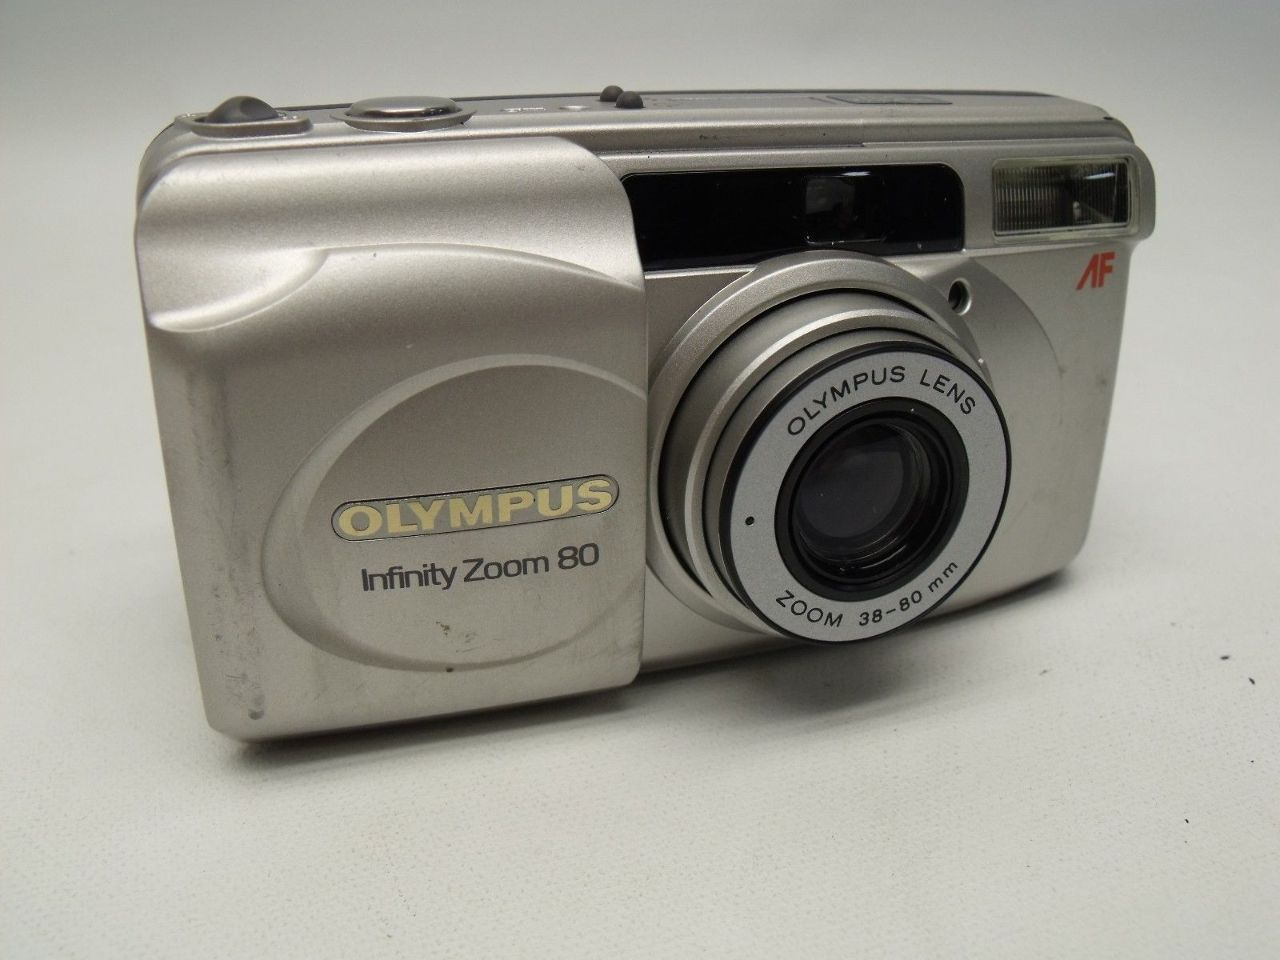 Olympus Infinity Zoom 80 Qd 35mm 38 80mm Point And Shoot